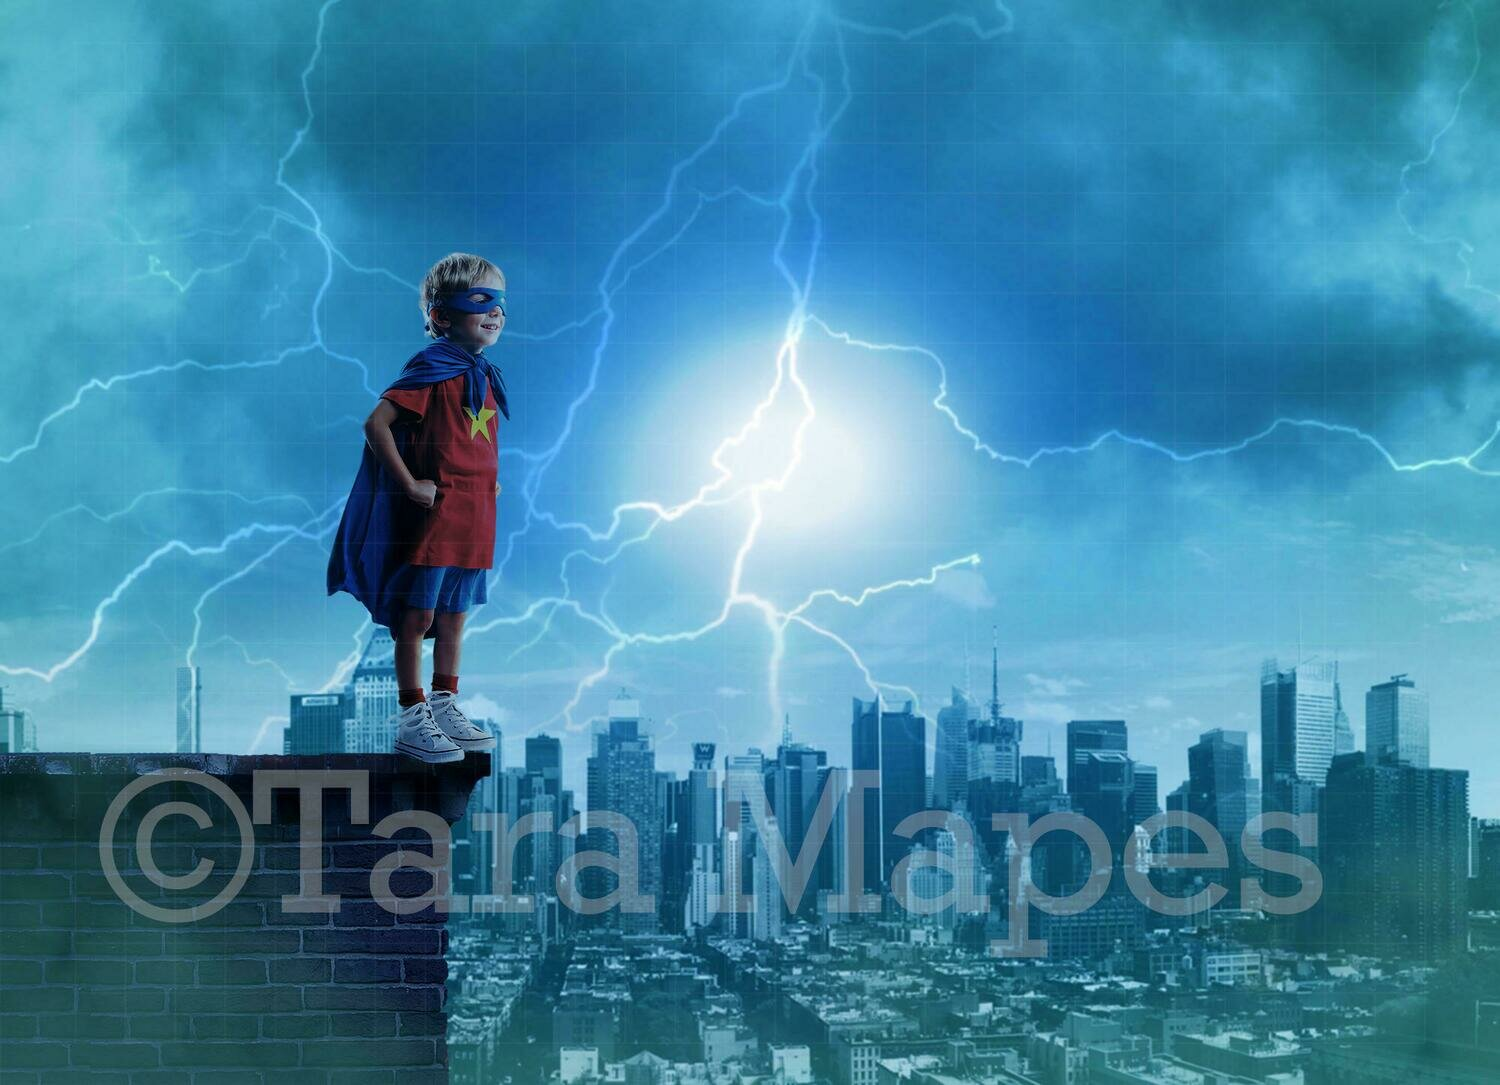 Super Hero over Stormy City Digital Background